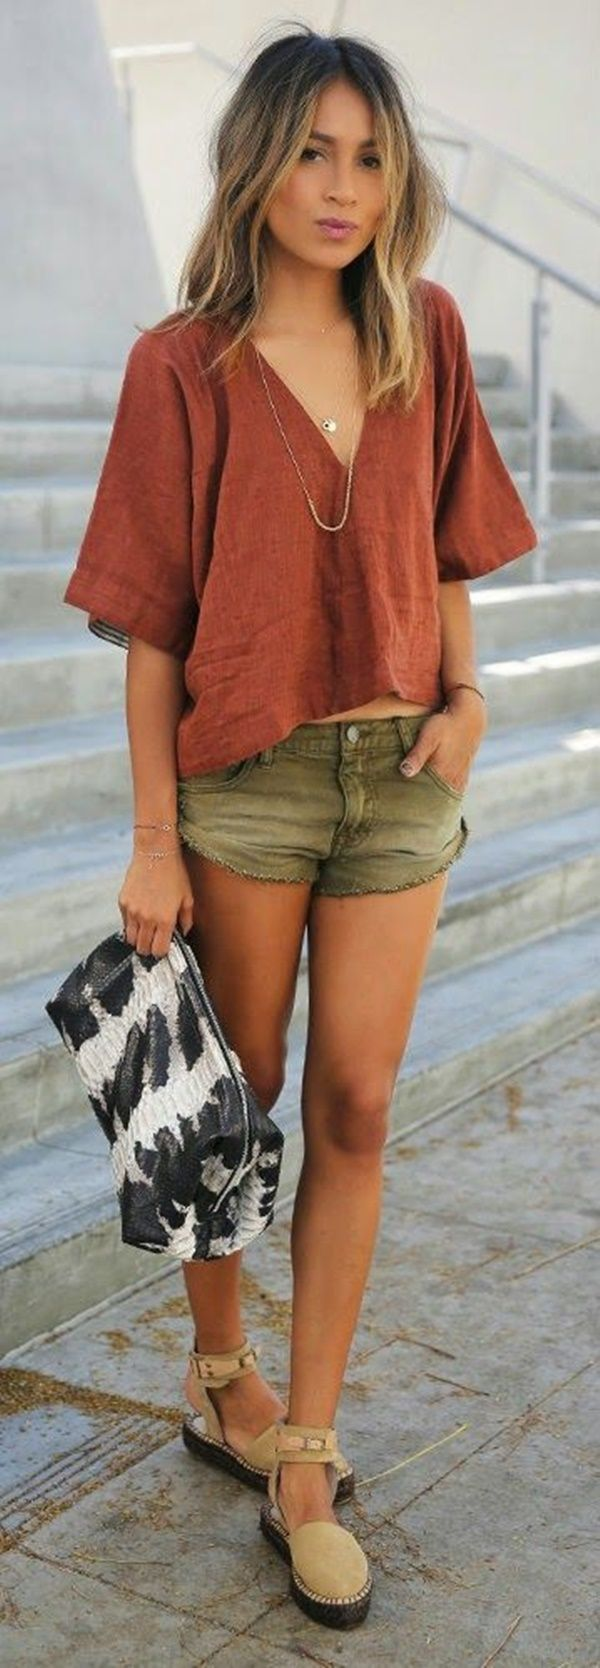 If you are on a vacation for summer, nothing beats a cool t-shirt and these denim shorts outfit. Like we all know clothes are only as good as the comfort they provide, the #denim #shorts are extremely comfortable to wear.